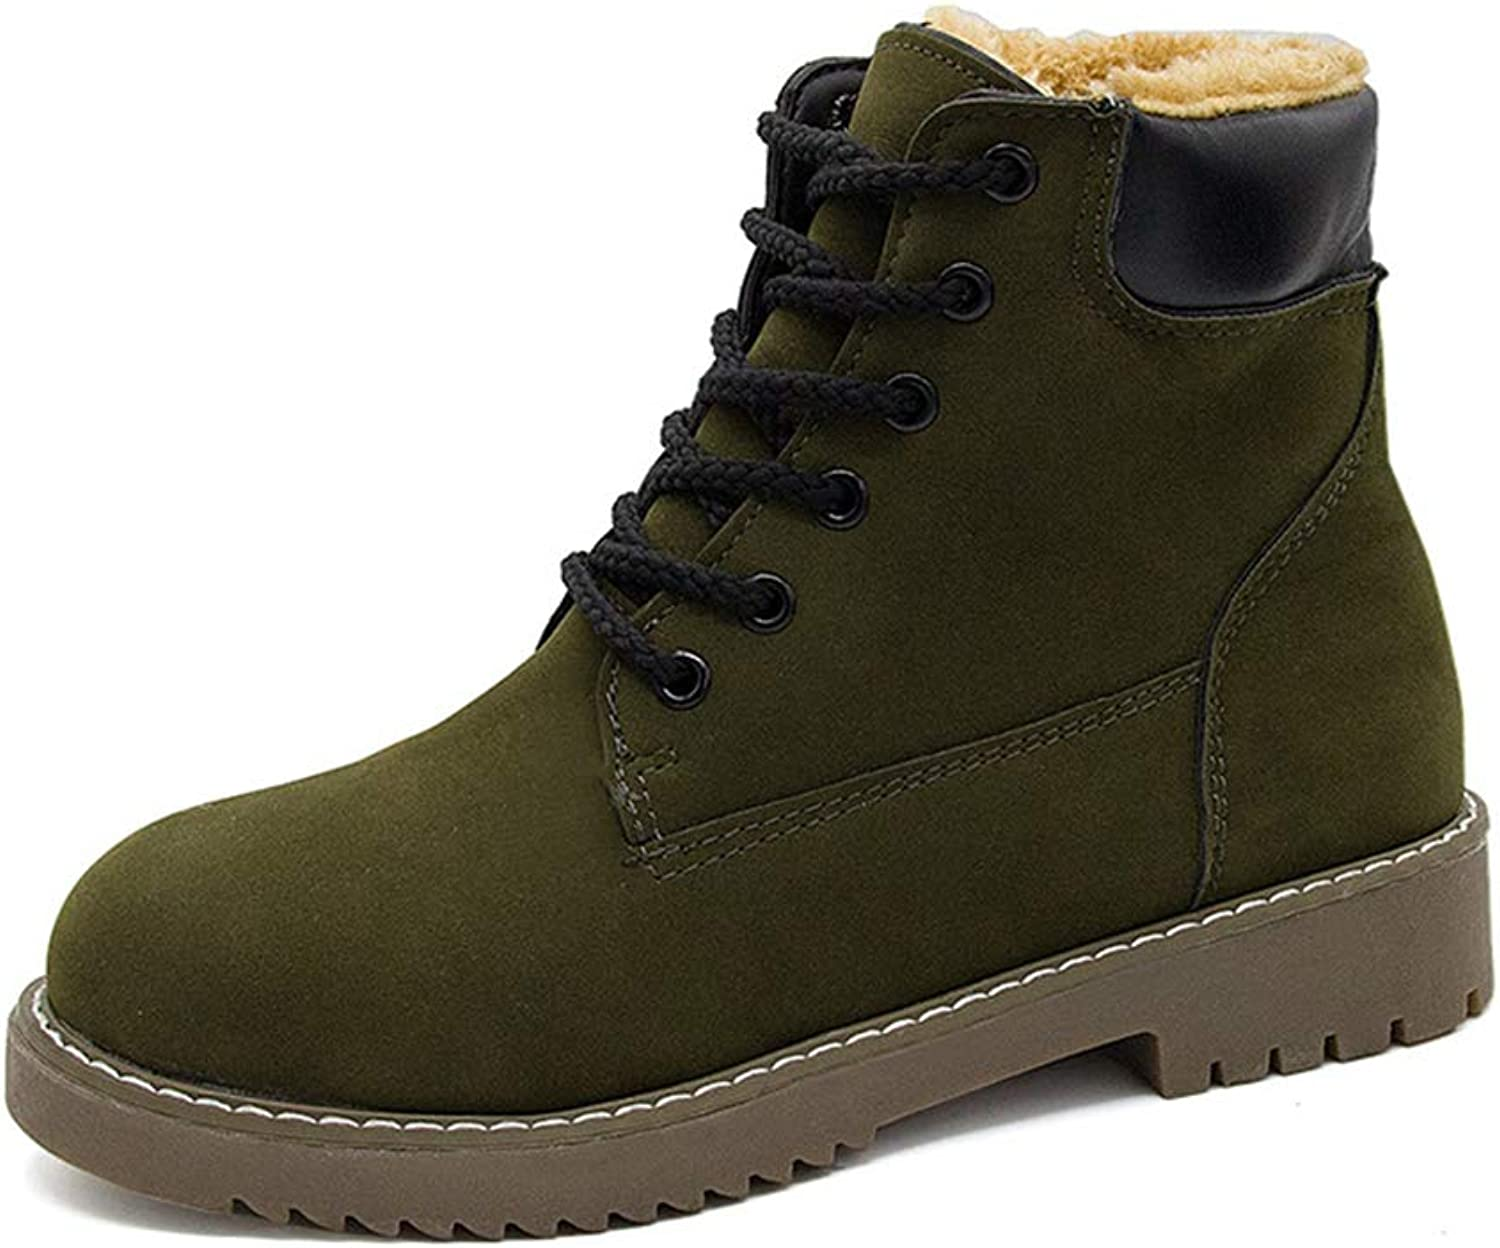 MIKA HOM Women's Plus Velvet Martin Boots Winter Snow Boots Warm shoes